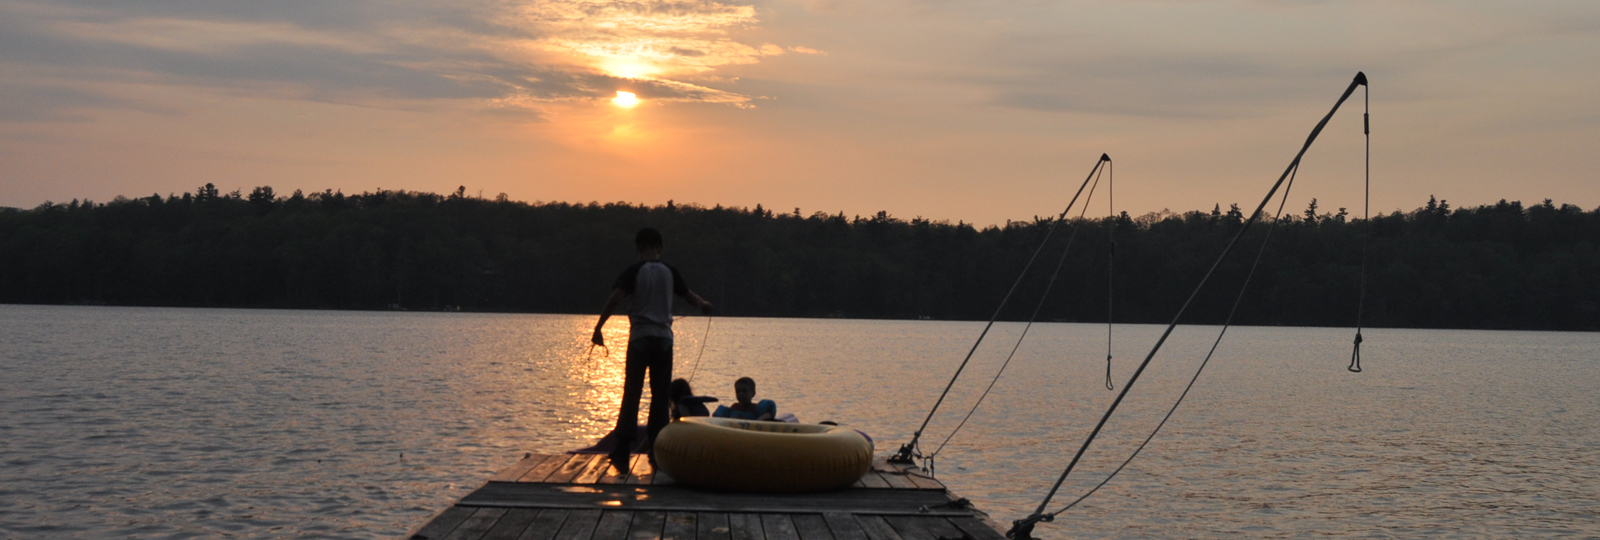 Kids on dock at sunset, Bob's Lake, Wesport